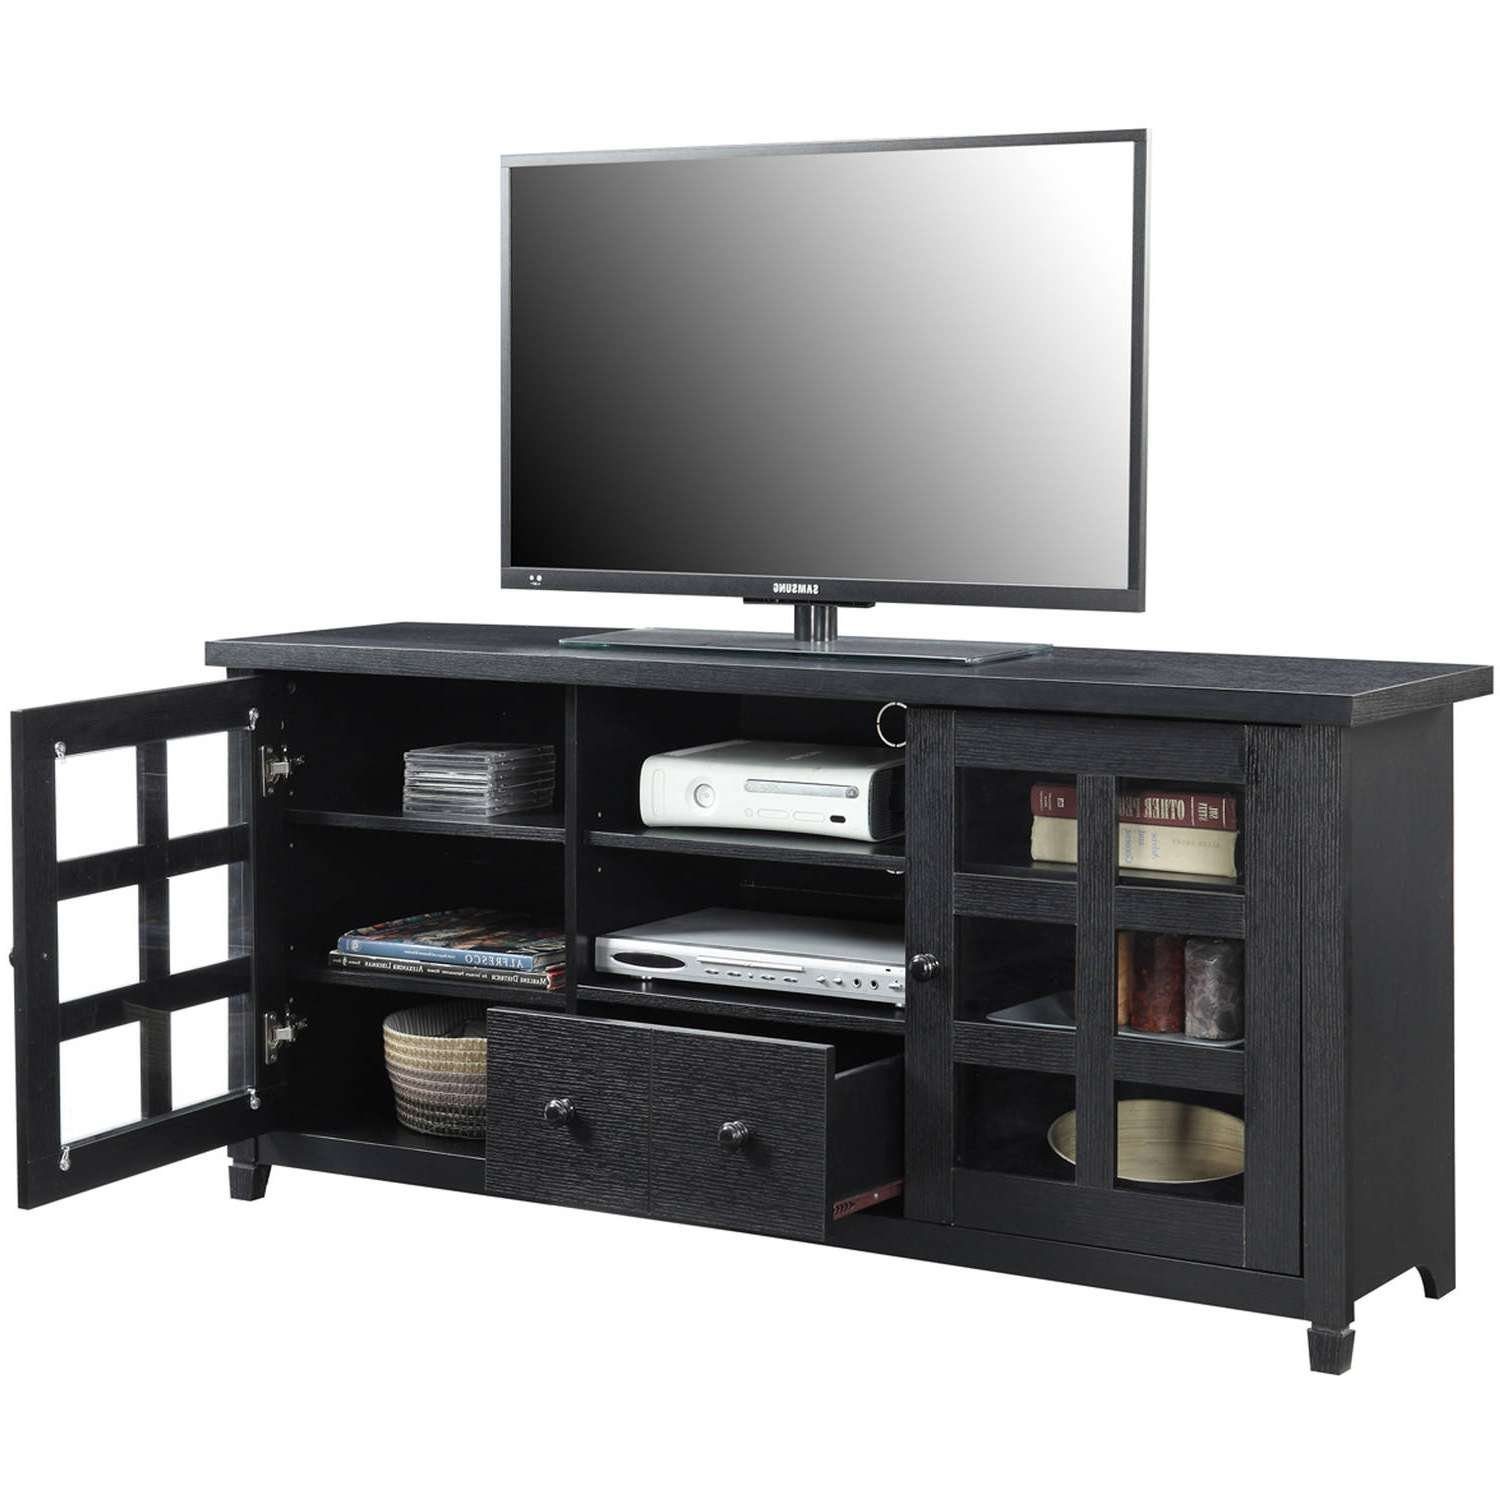 Convenience Concepts Newport Park Lane Tv Stand For Tvs Up To 60 Inside Lane Tv Stands (View 14 of 15)